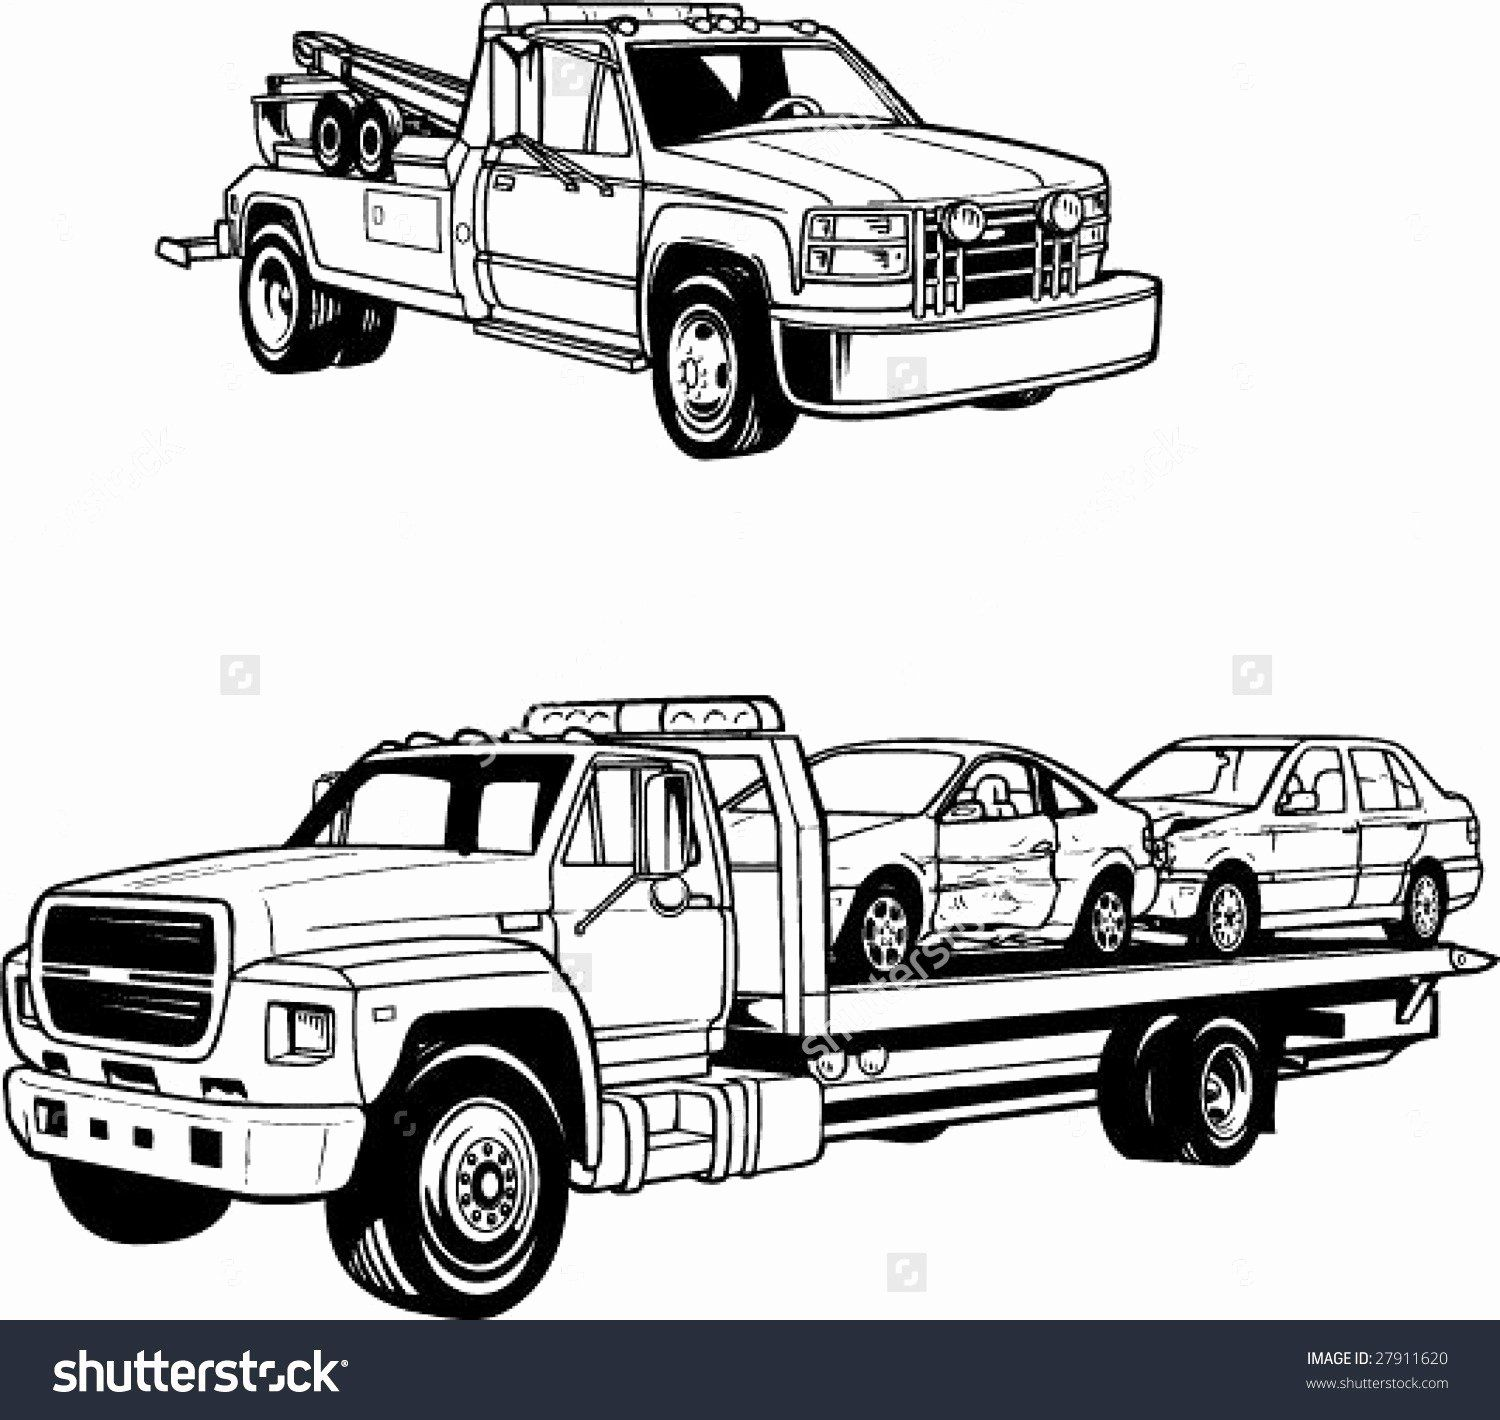 Truck Coloring Pages For Adults Inspirational Coloring Design Flatbed Tow Truck Coloring Pages Mr D Truck Coloring Pages Tow Truck Monster Truck Coloring Pages